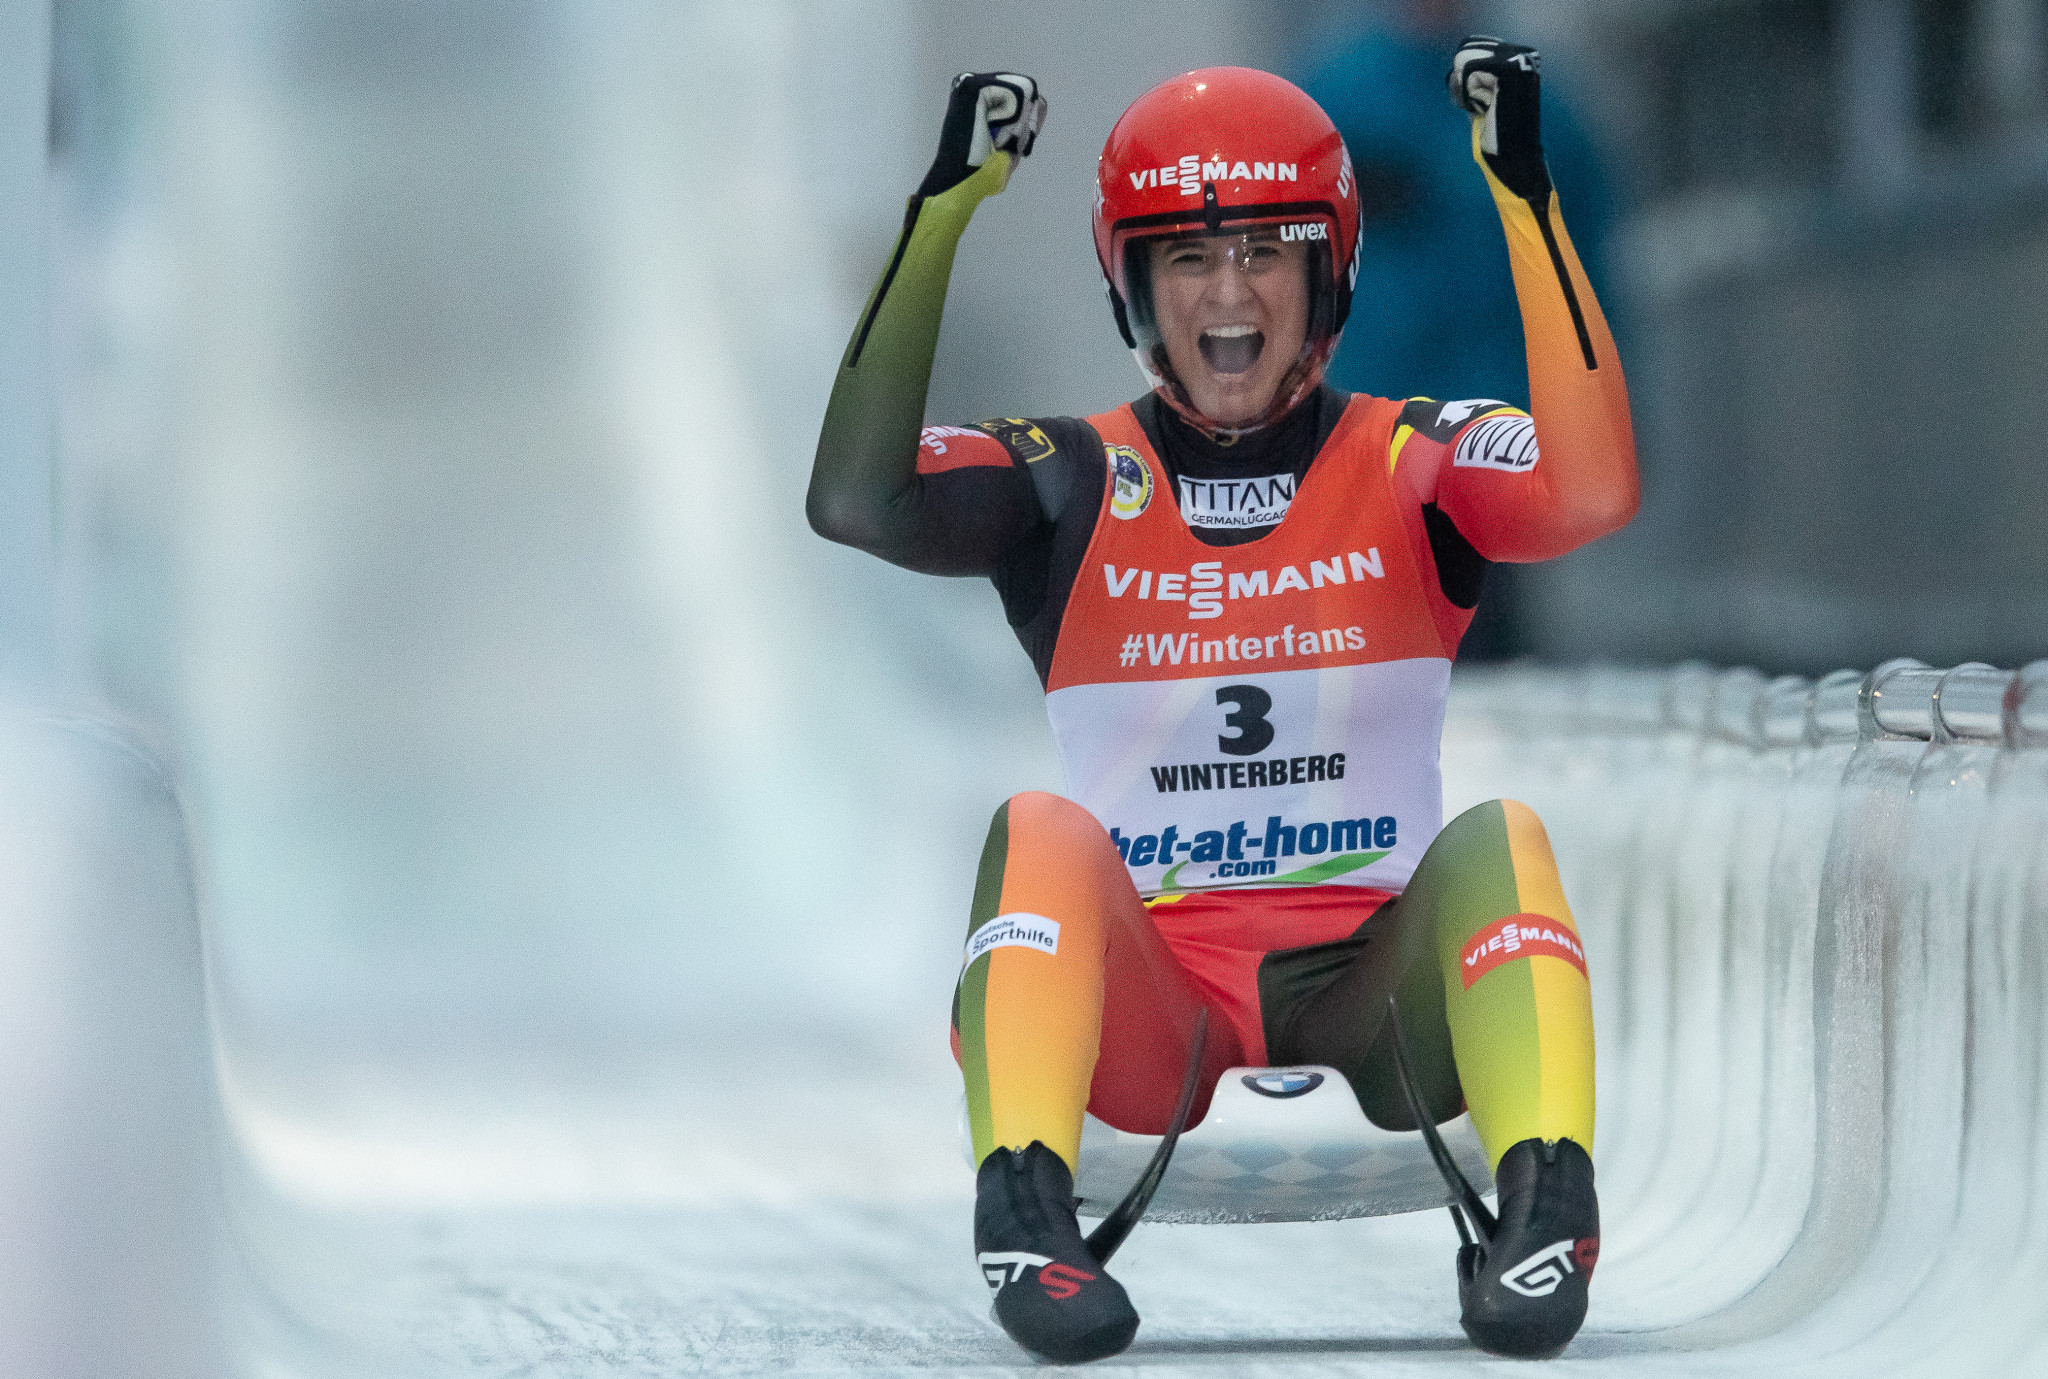 Germany's Natalie Geisenberger is returning to FIL World Cup action after winning the fourth world title of her career ©Getty Images